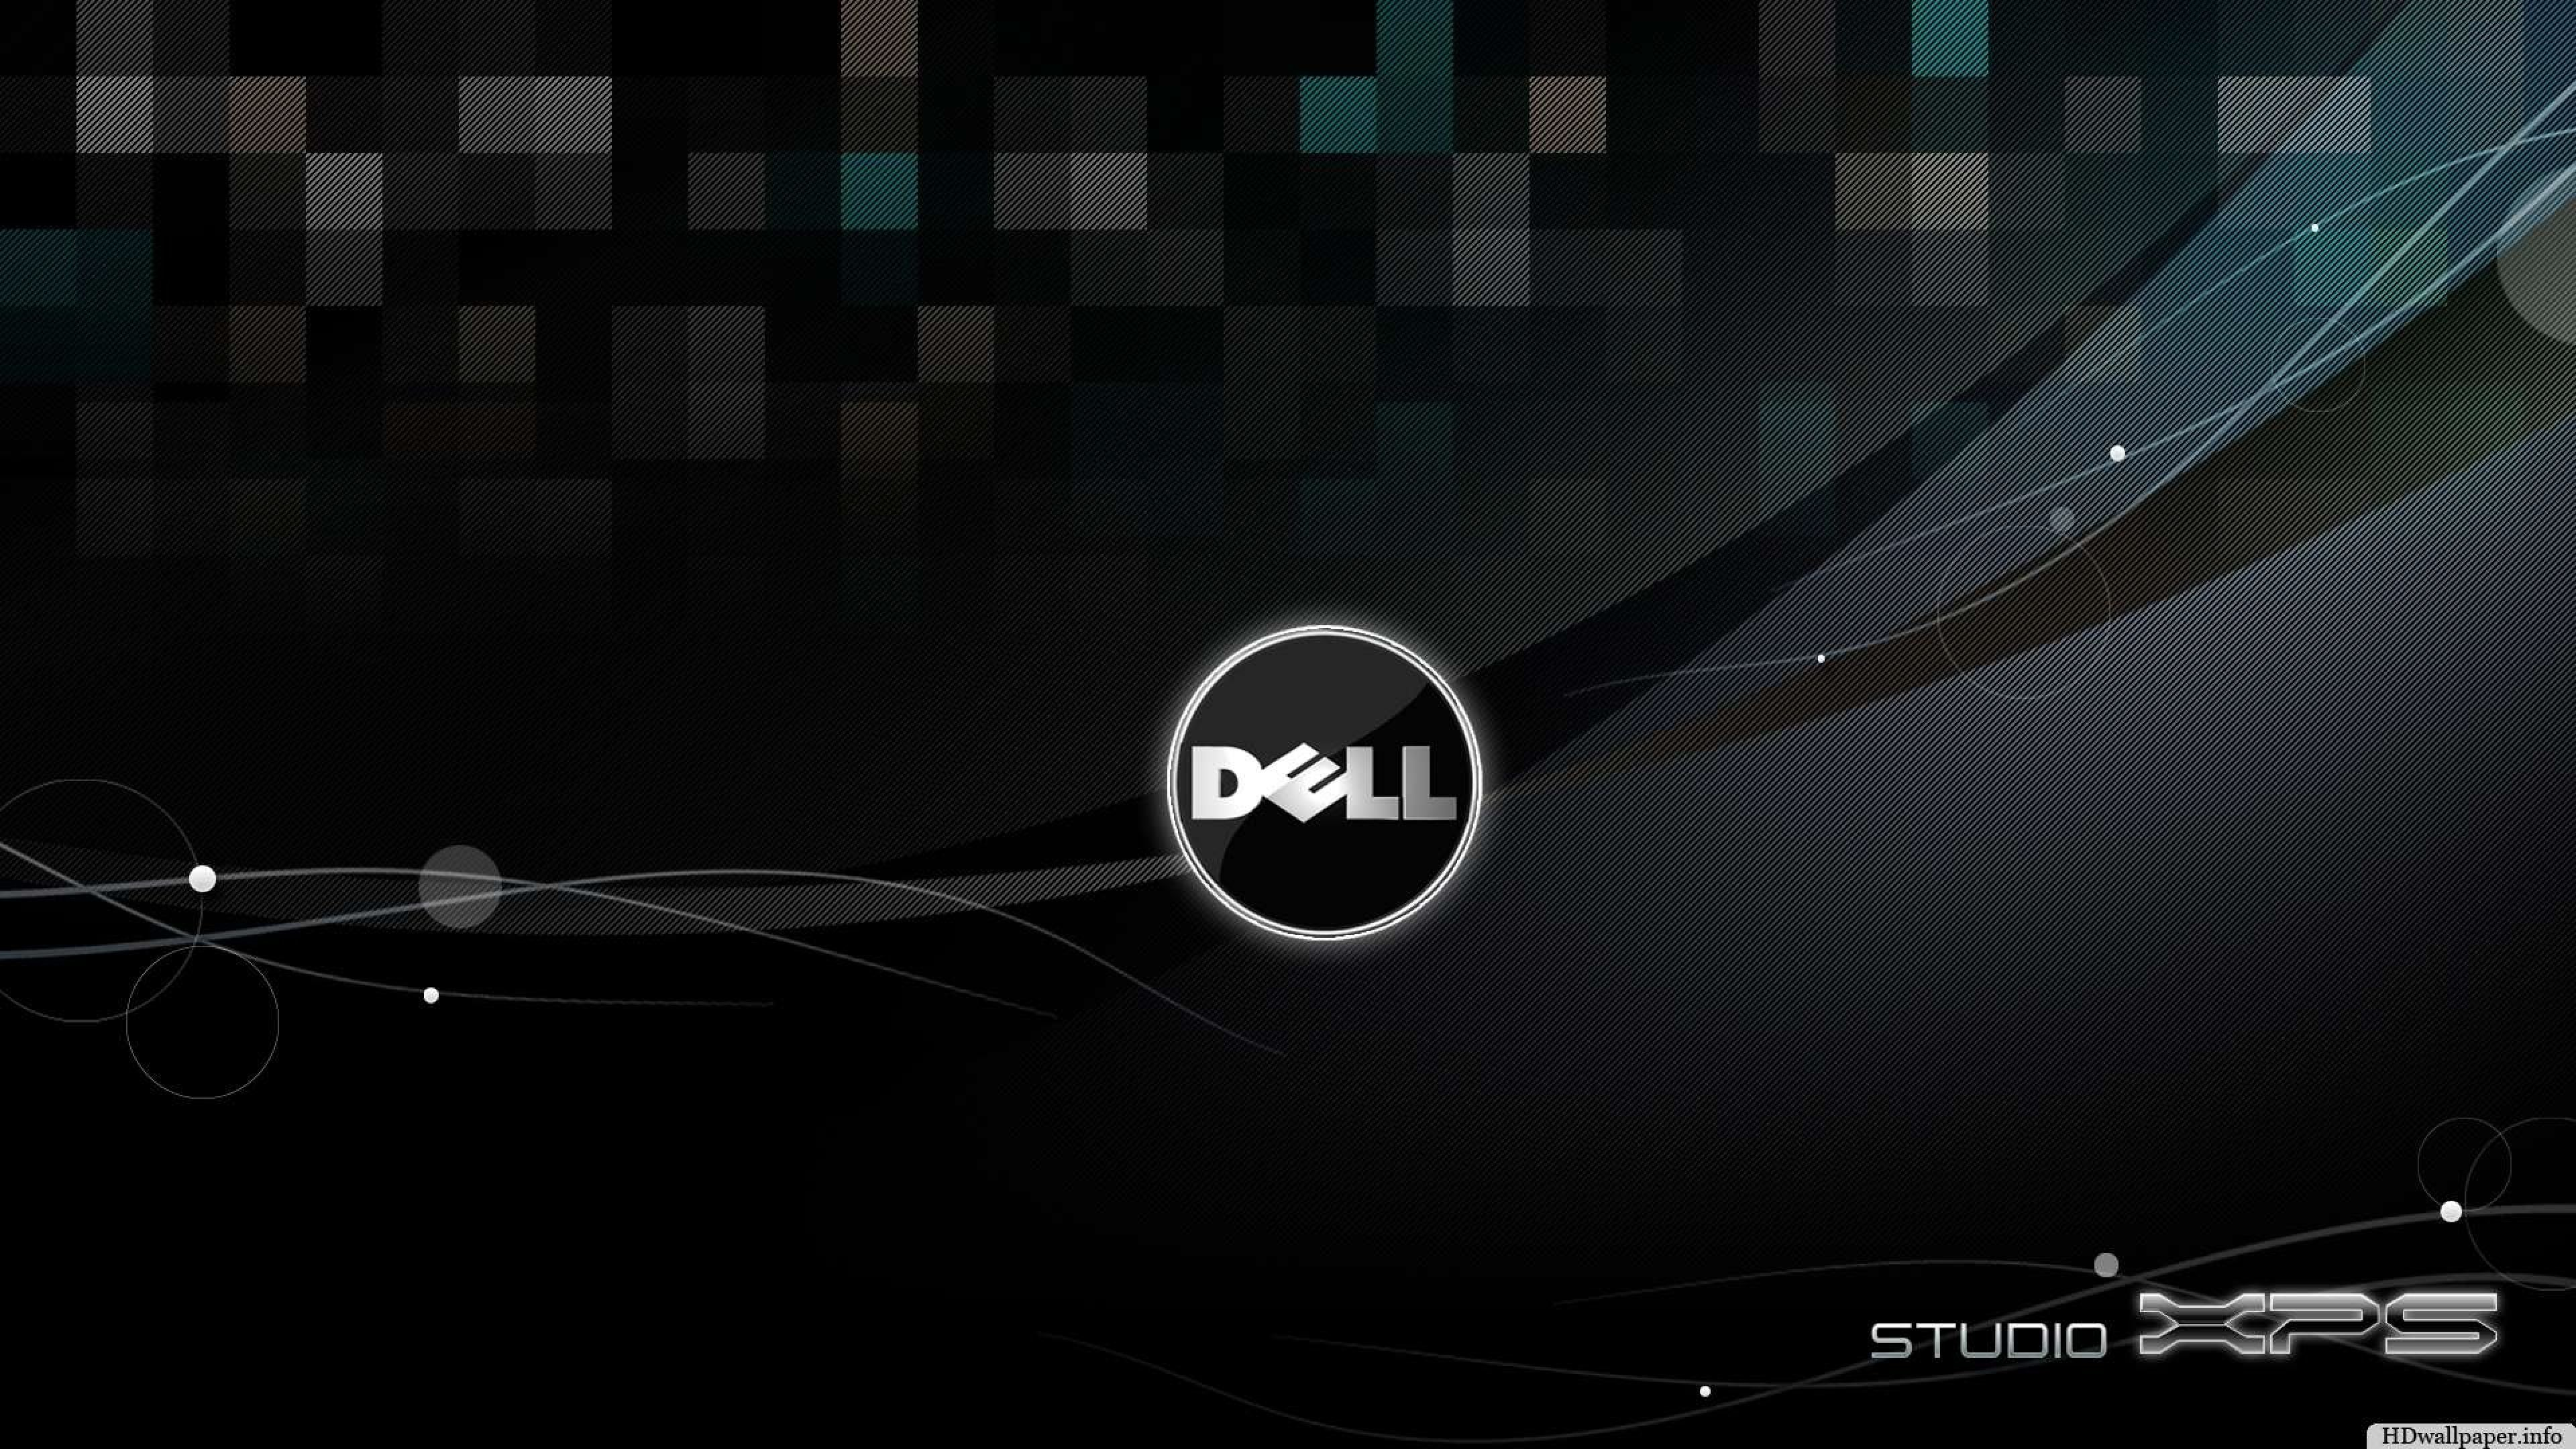 Dell Wallpaper: Dell Desktop Background ·① WallpaperTag